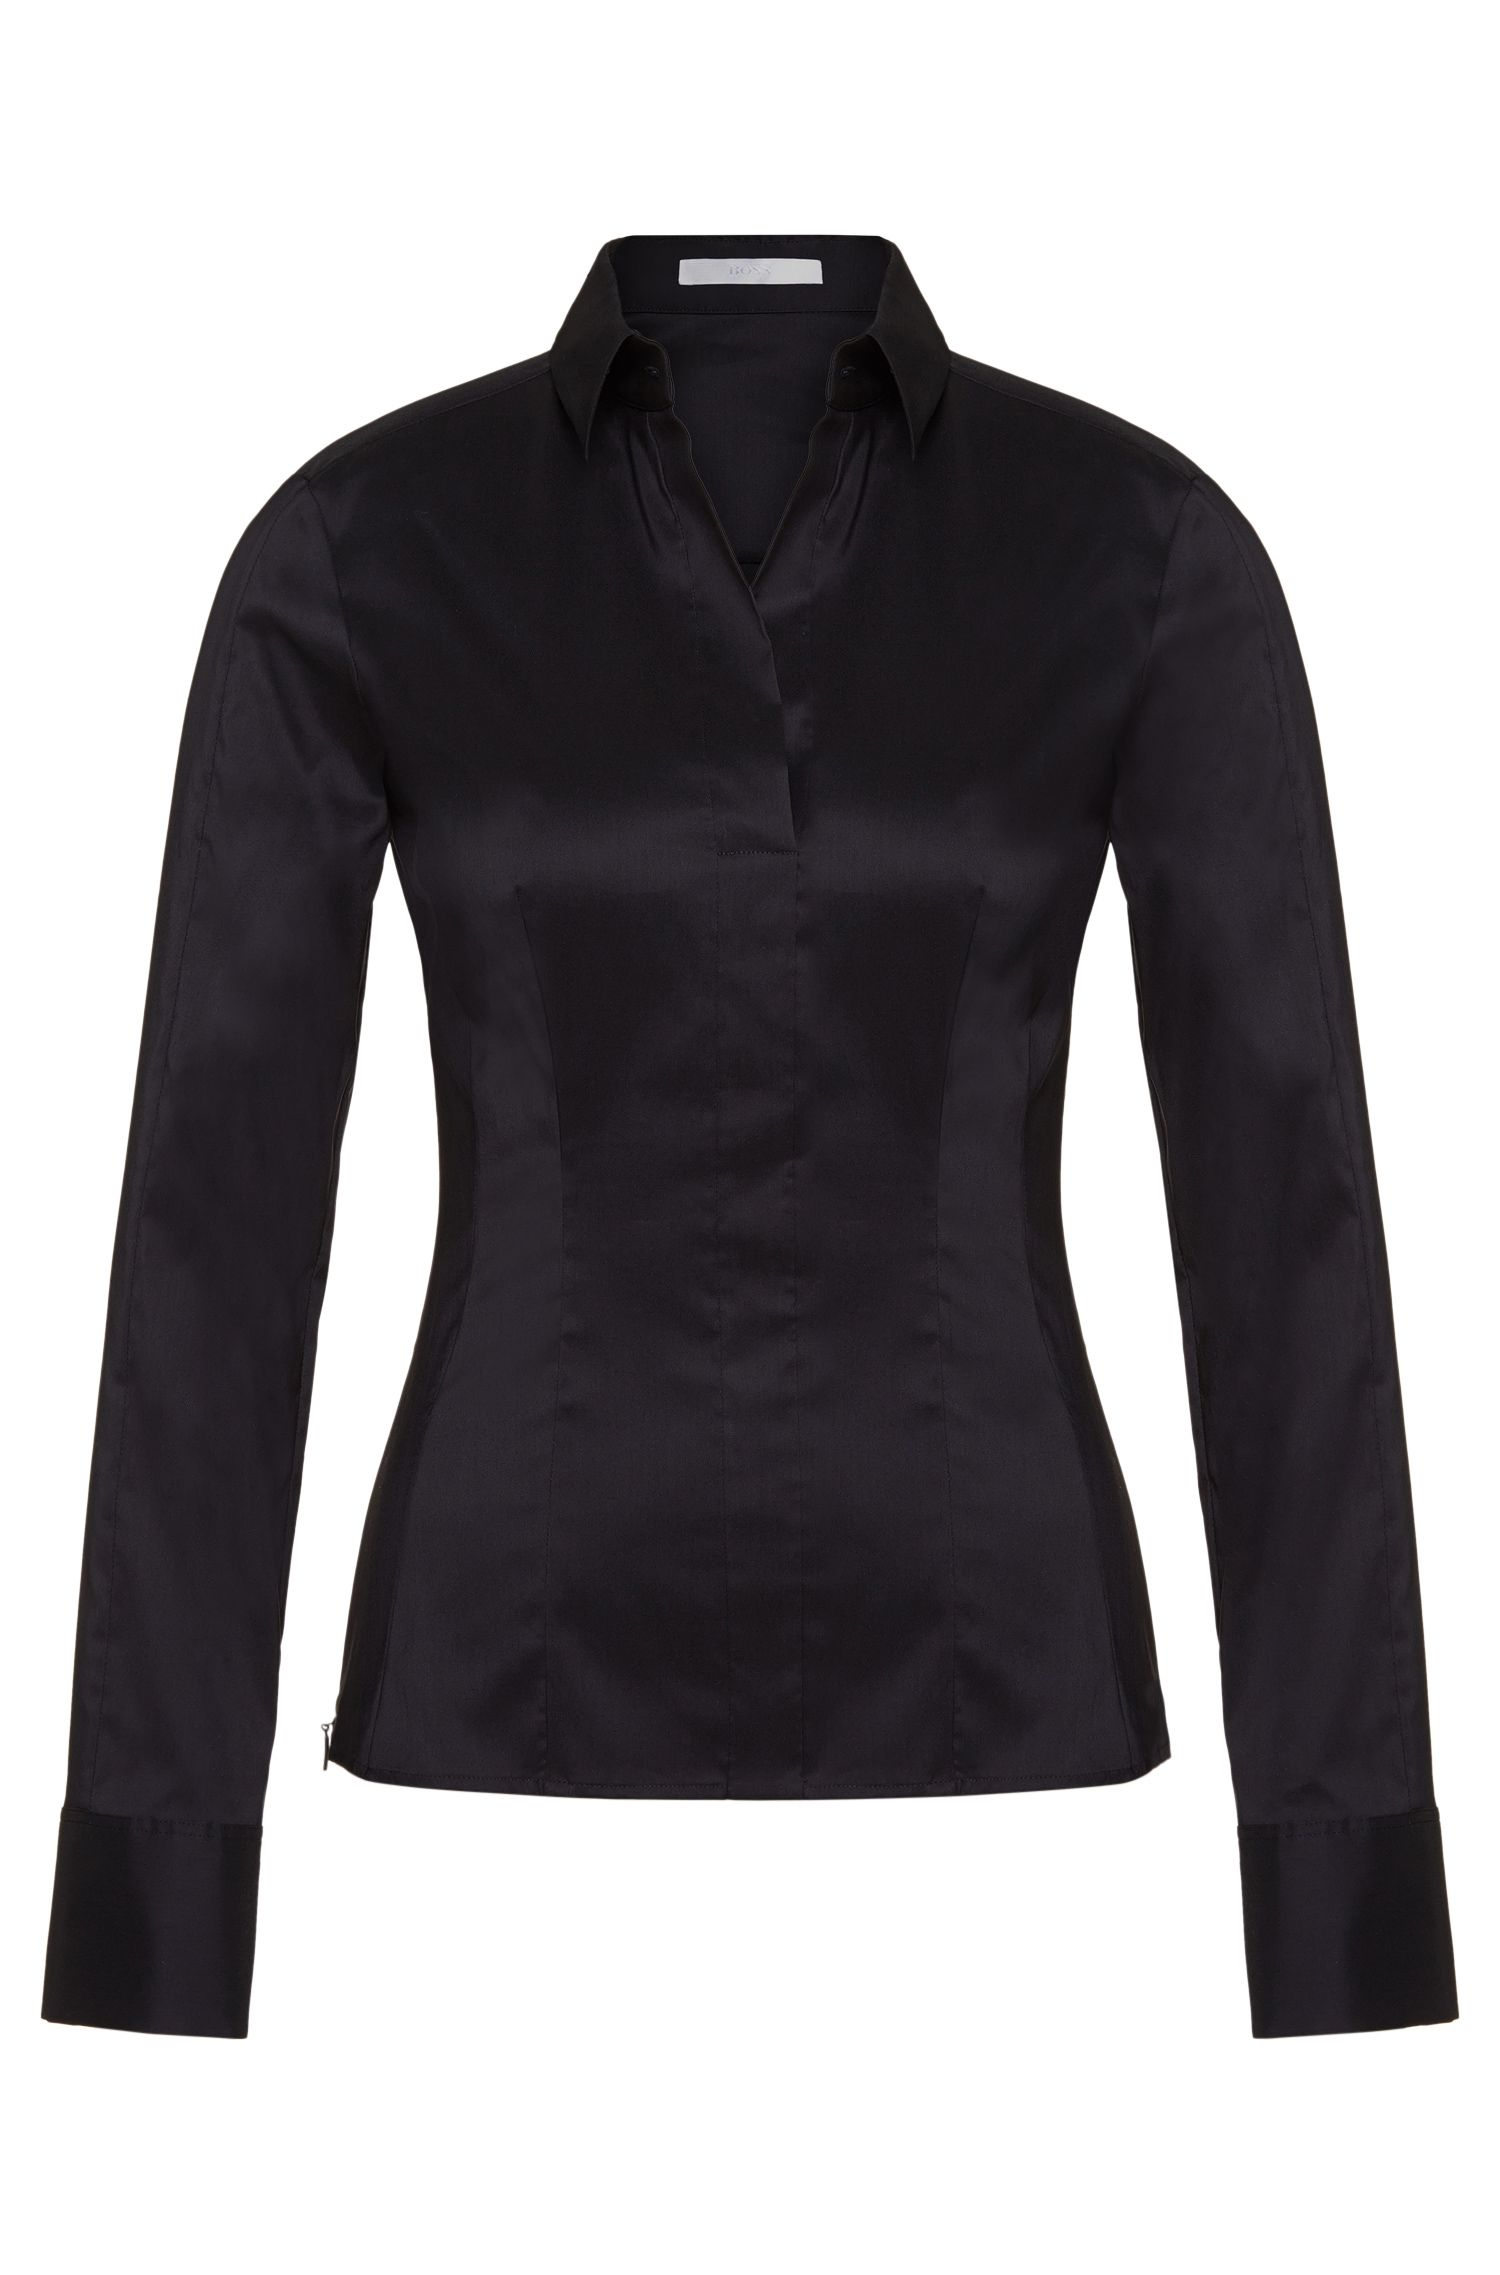 Slim-fit blouse with darted seam detail by BOSS Womenswear Fundamentals